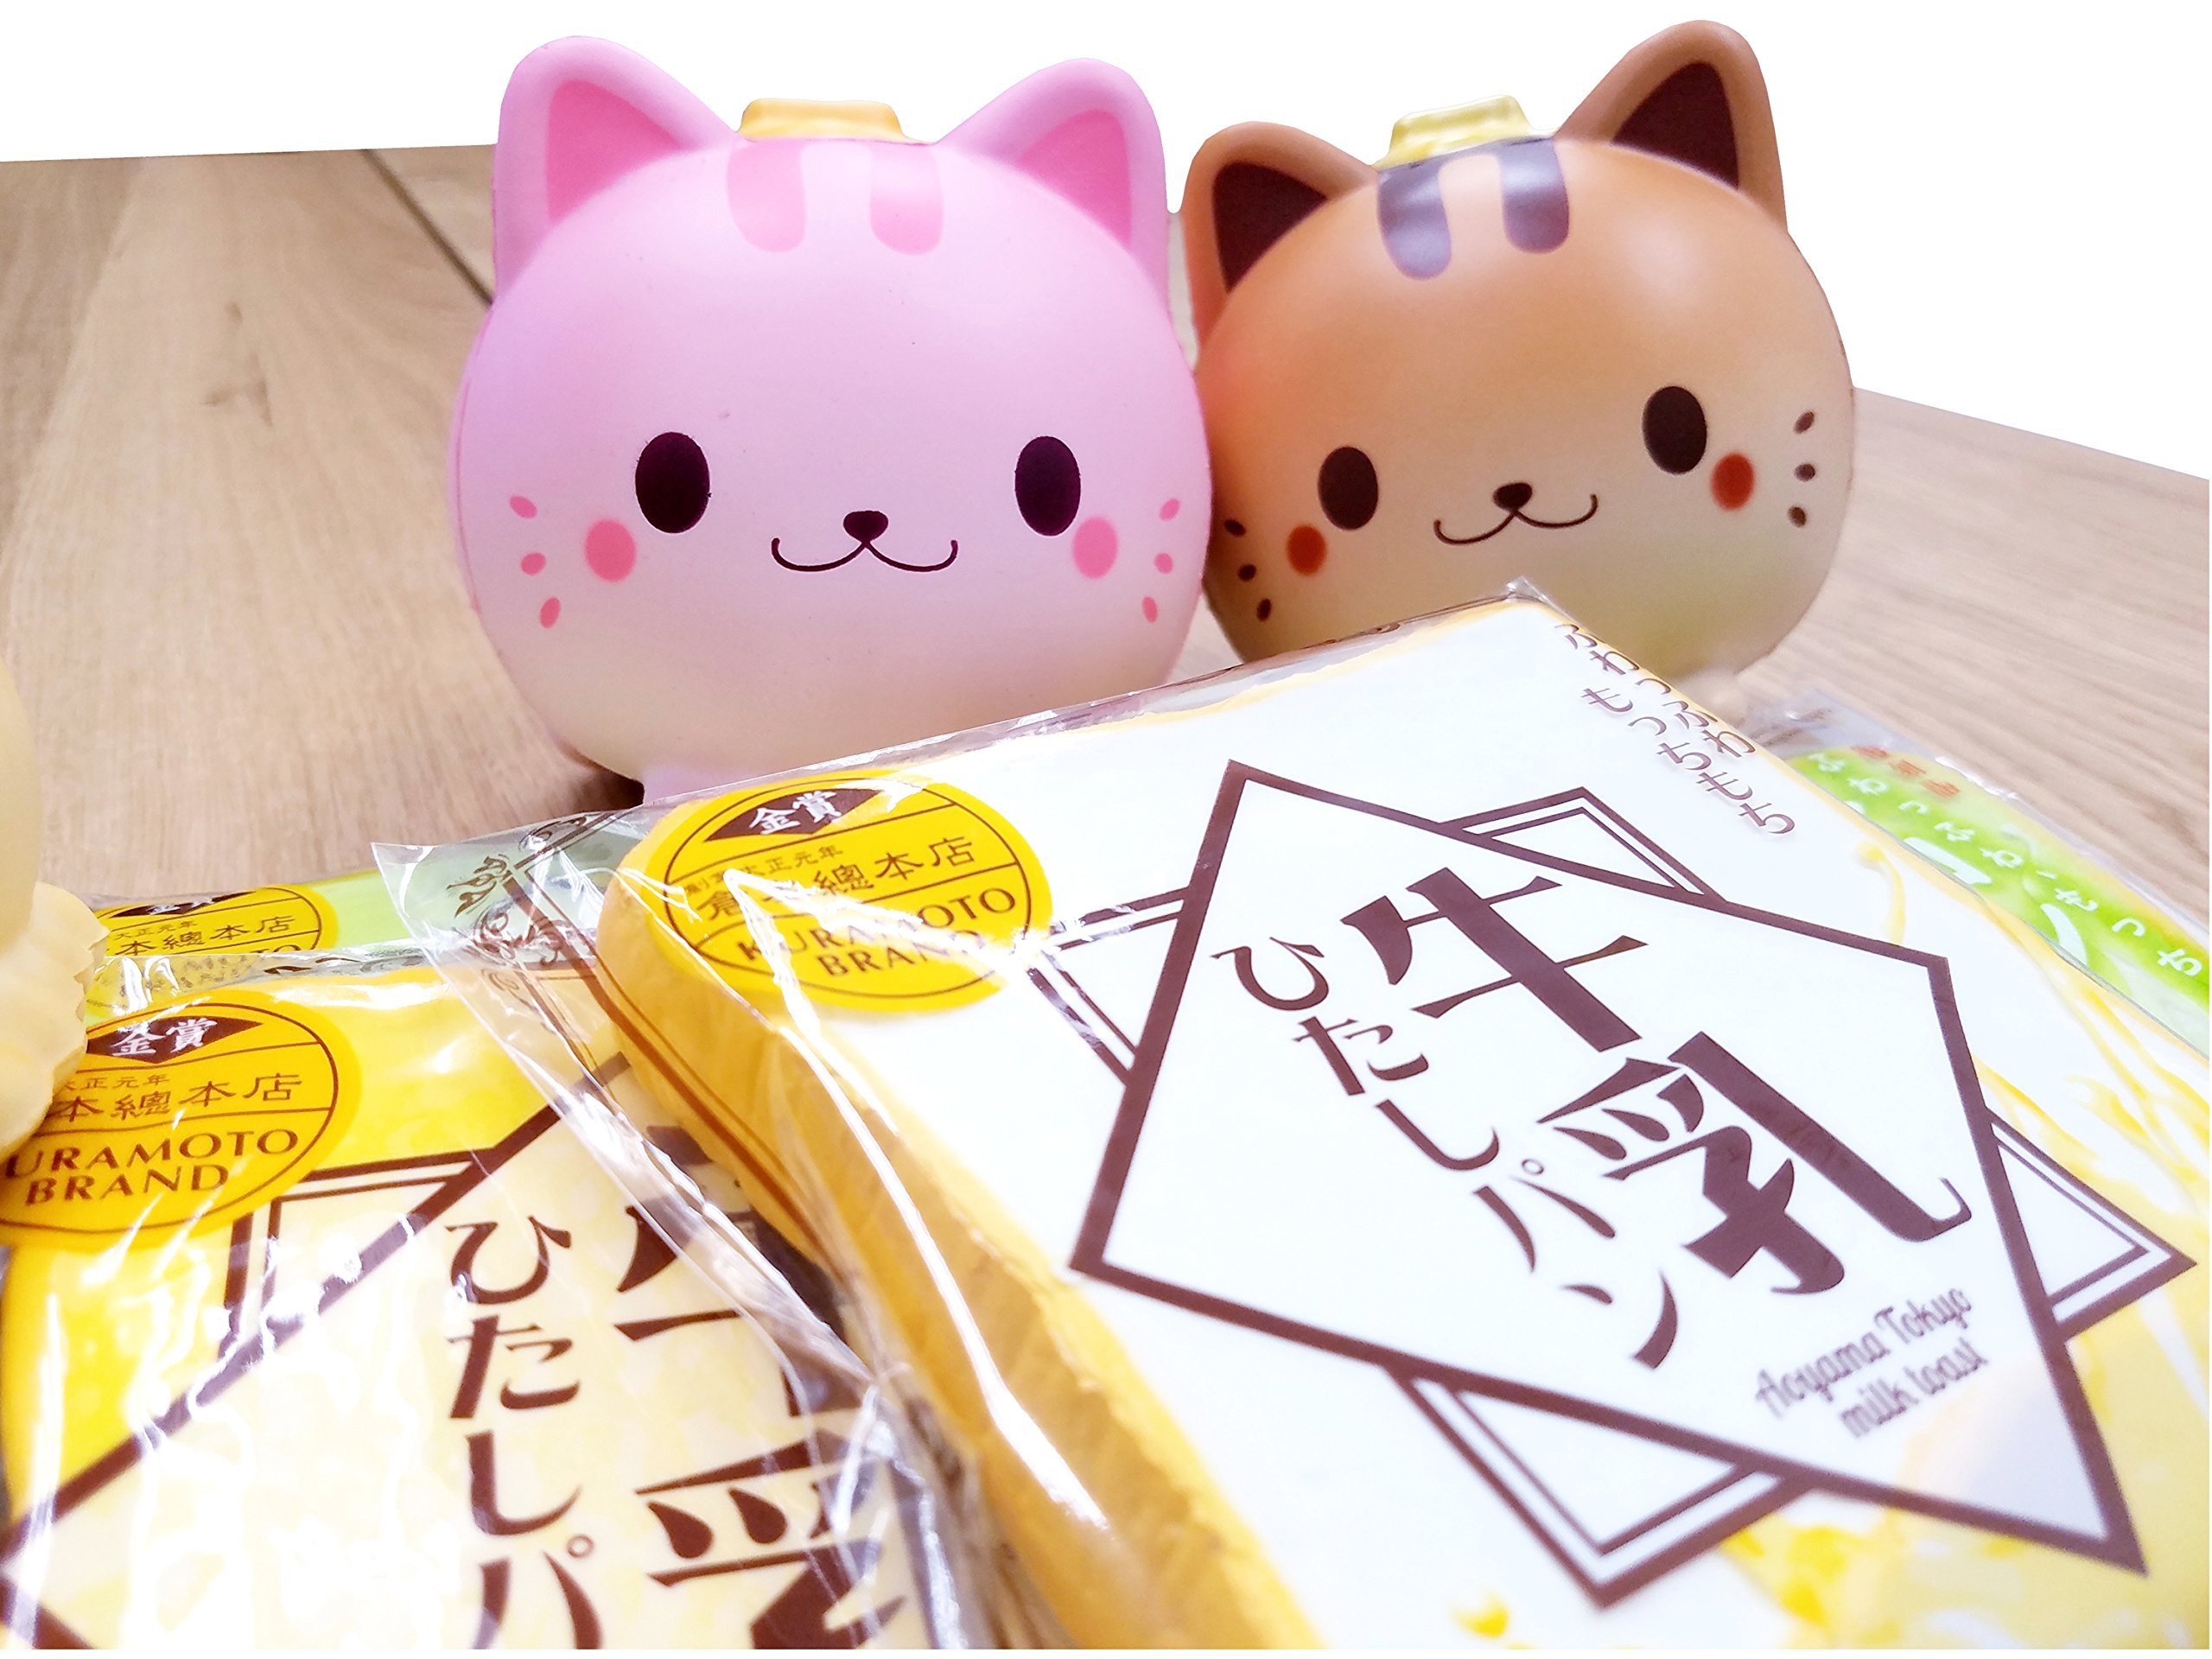 ibloom ''Slow Rising [Squishy Collection] Nyan Pancake Strawberry [Scented] Cake Jumbo Squishy Kids Cute Adorable Doll Stress Relief Toy Decorative Props